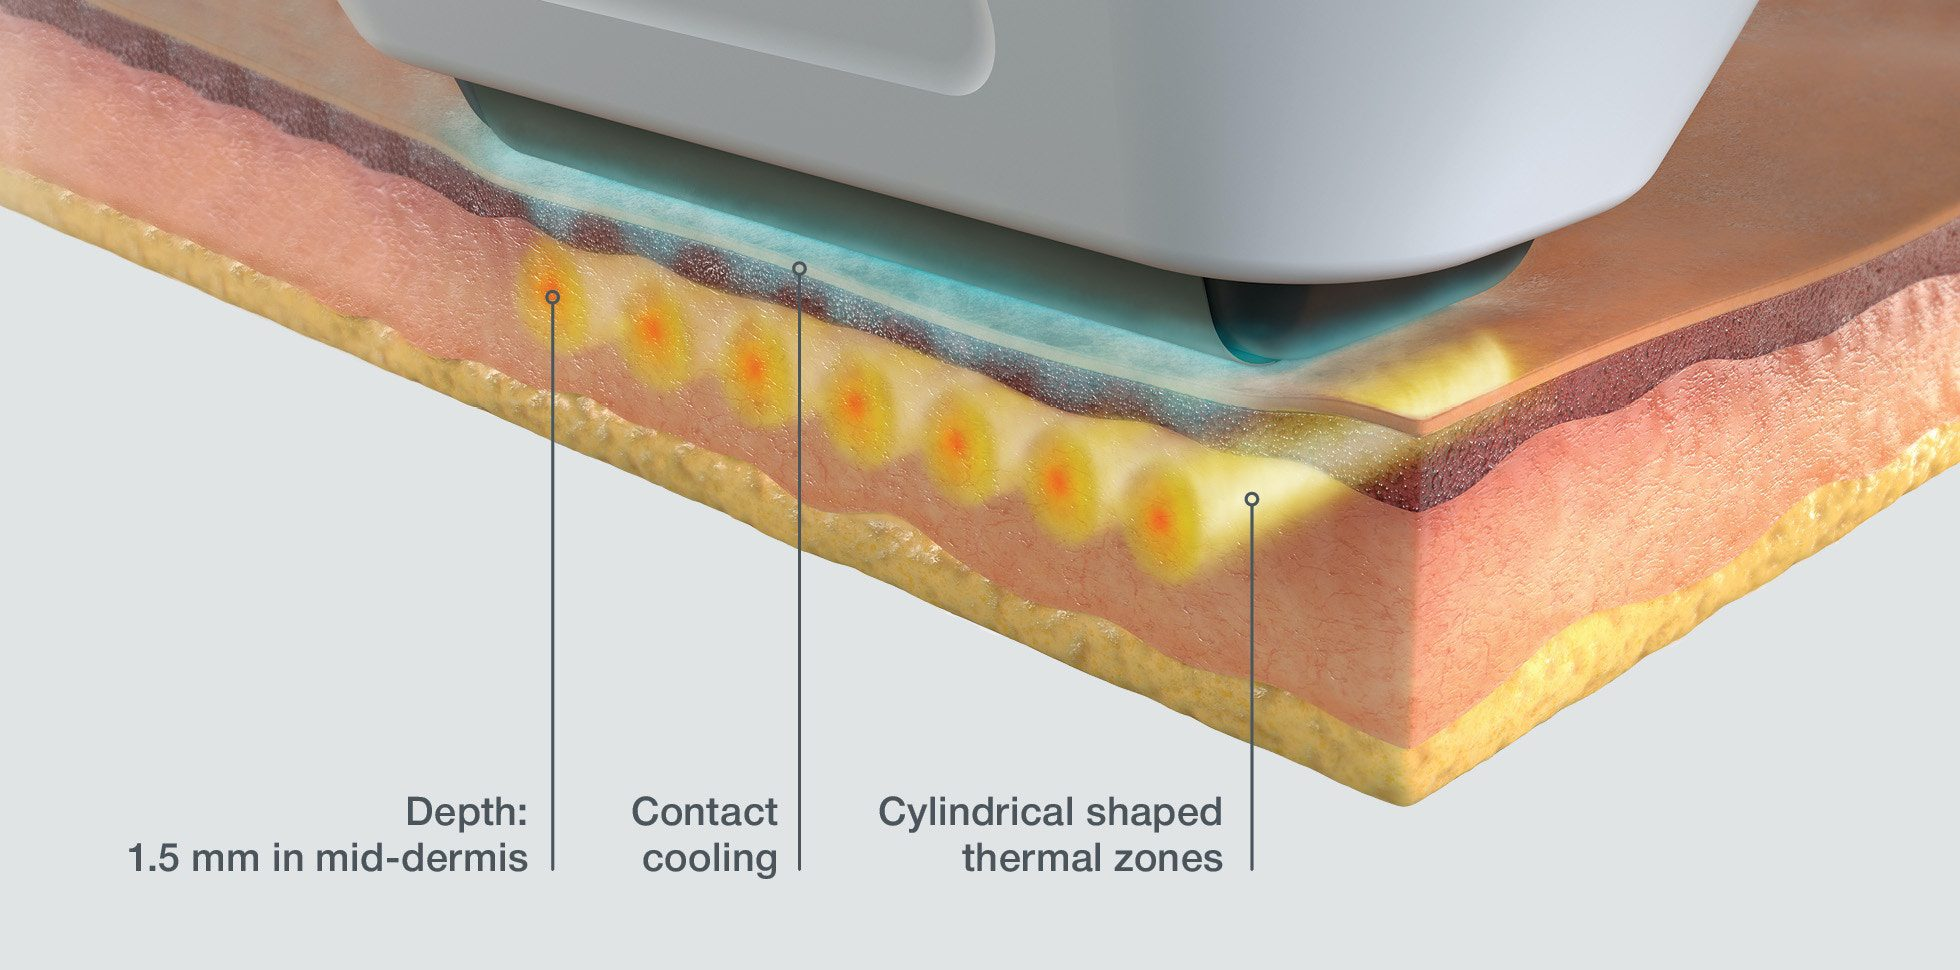 Softwave Skin treatment how it works